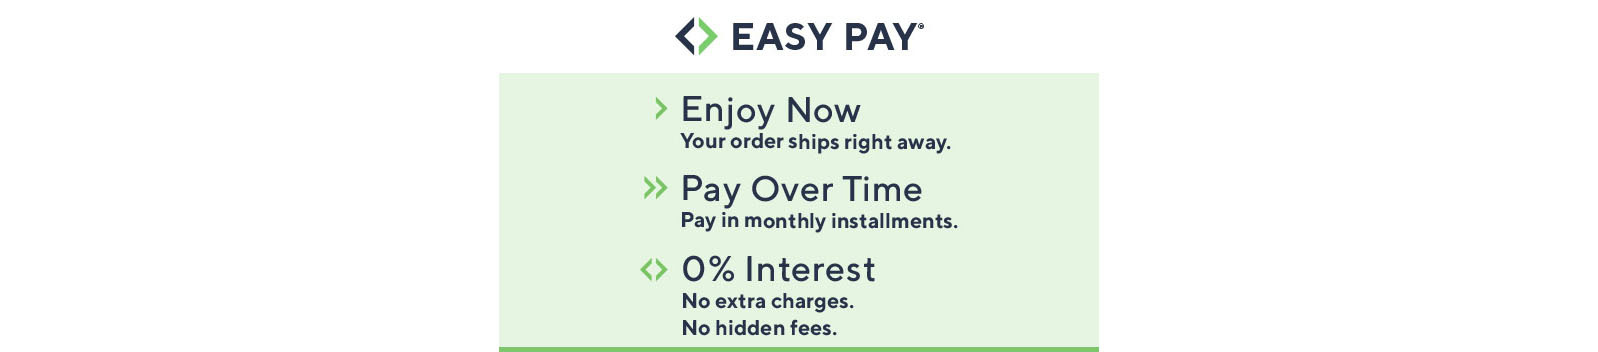 Easy Pay®  Enjoy Now Your order ships right away.  Pay Over Time Pay in monthly installments.  0% Interest No extra charges. No hidden fees.